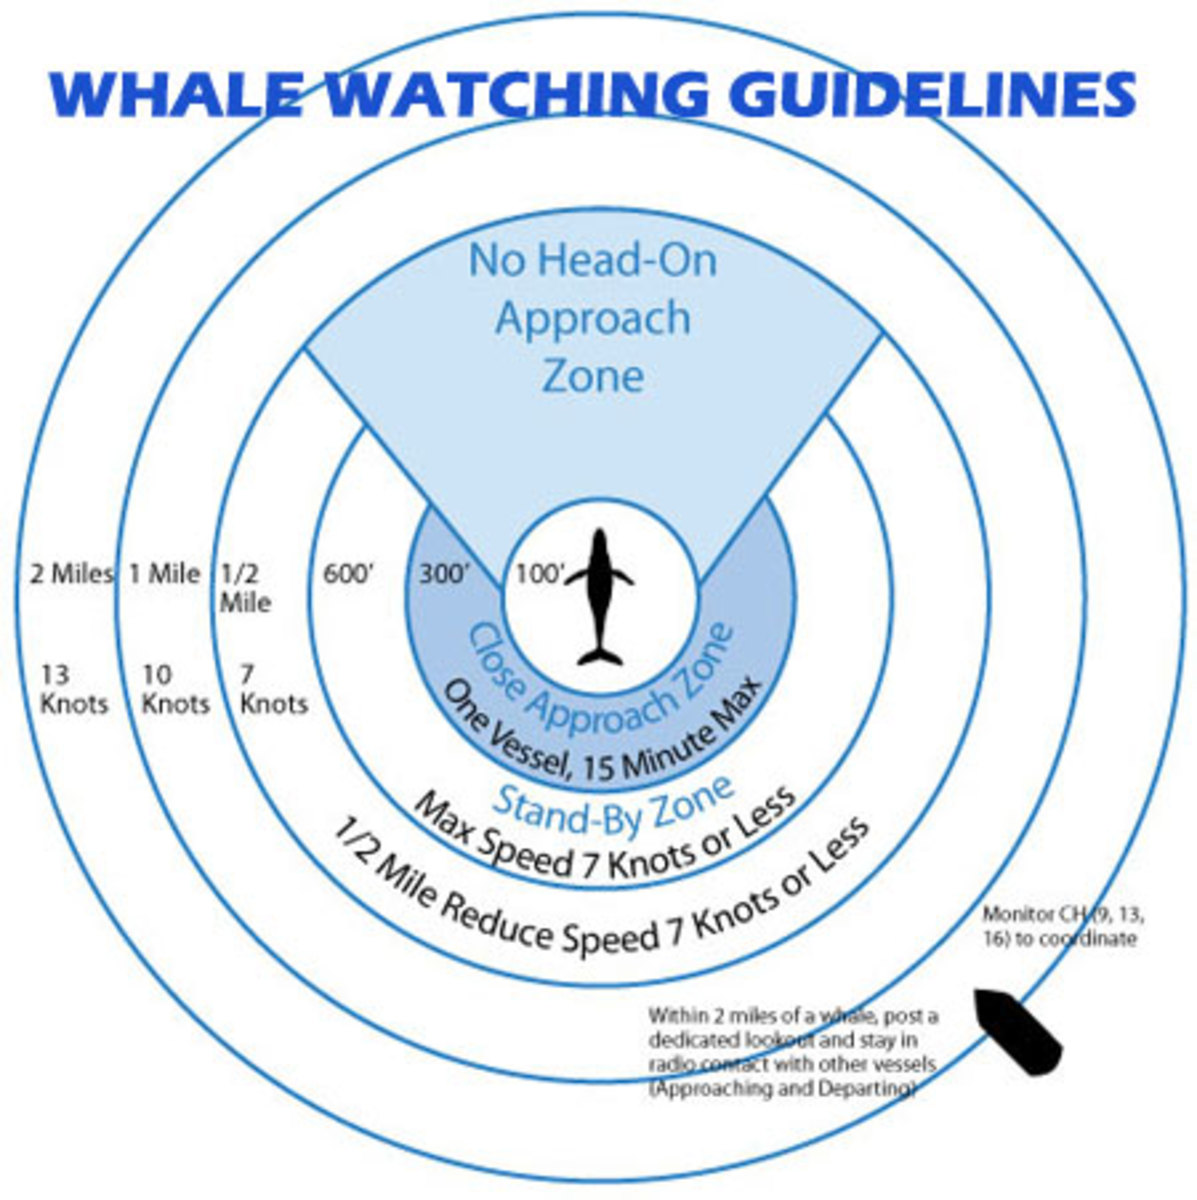 A NOAA guide to whale watching.